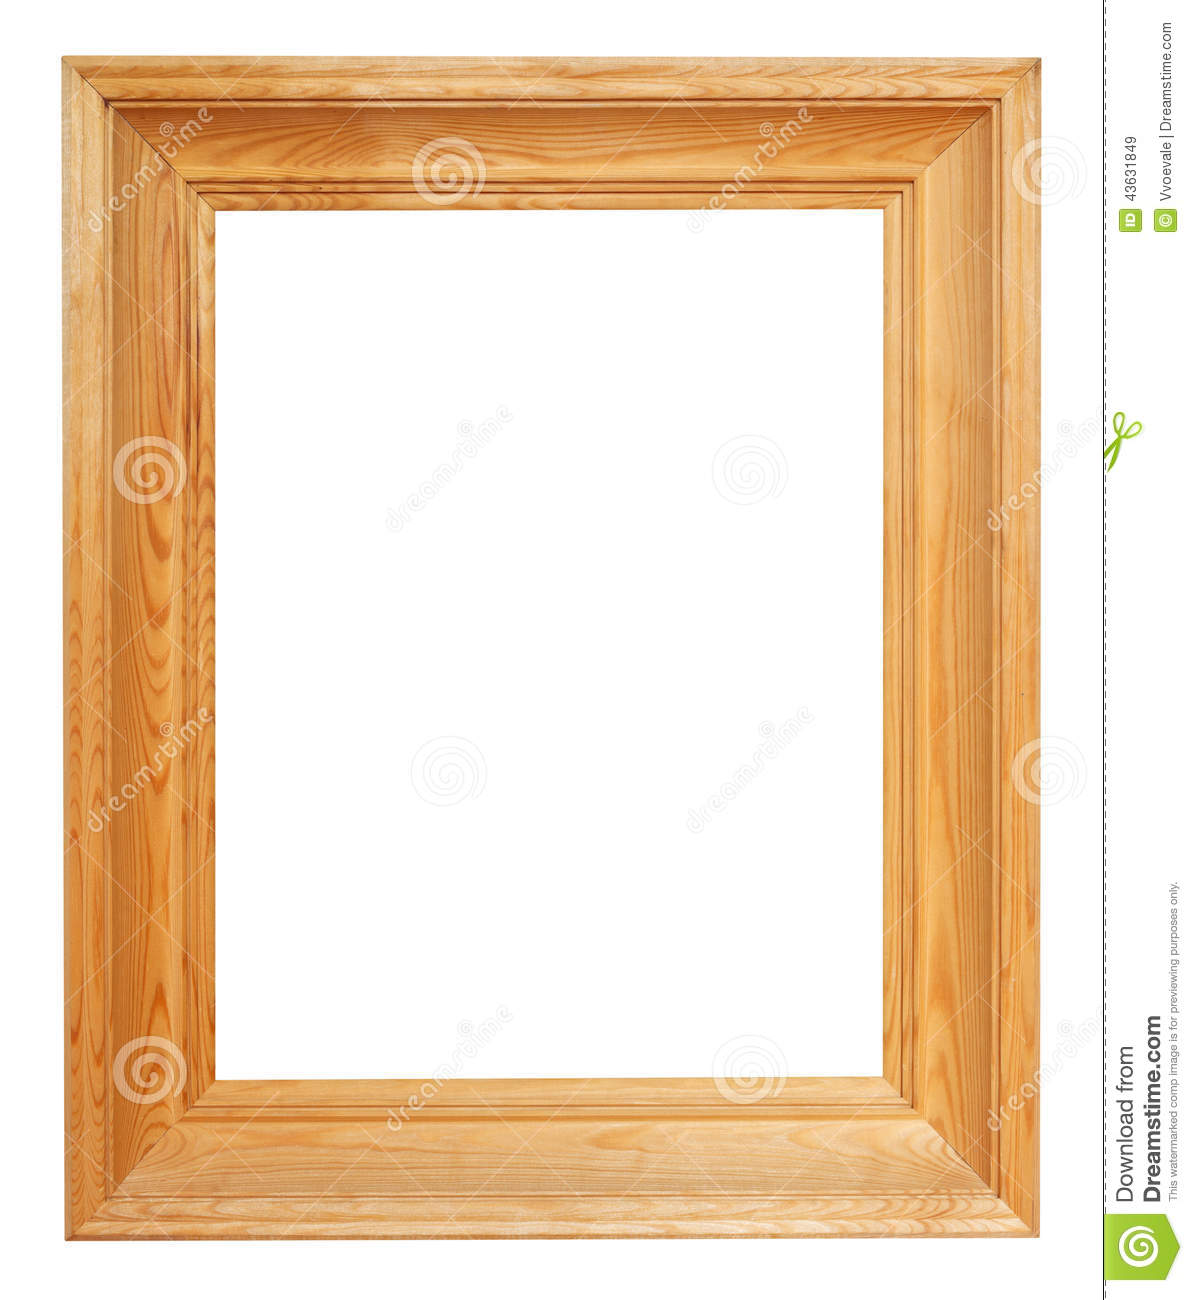 Vertical Simple Wide Brown Wooden Picture Frame Stock Image - Image ...